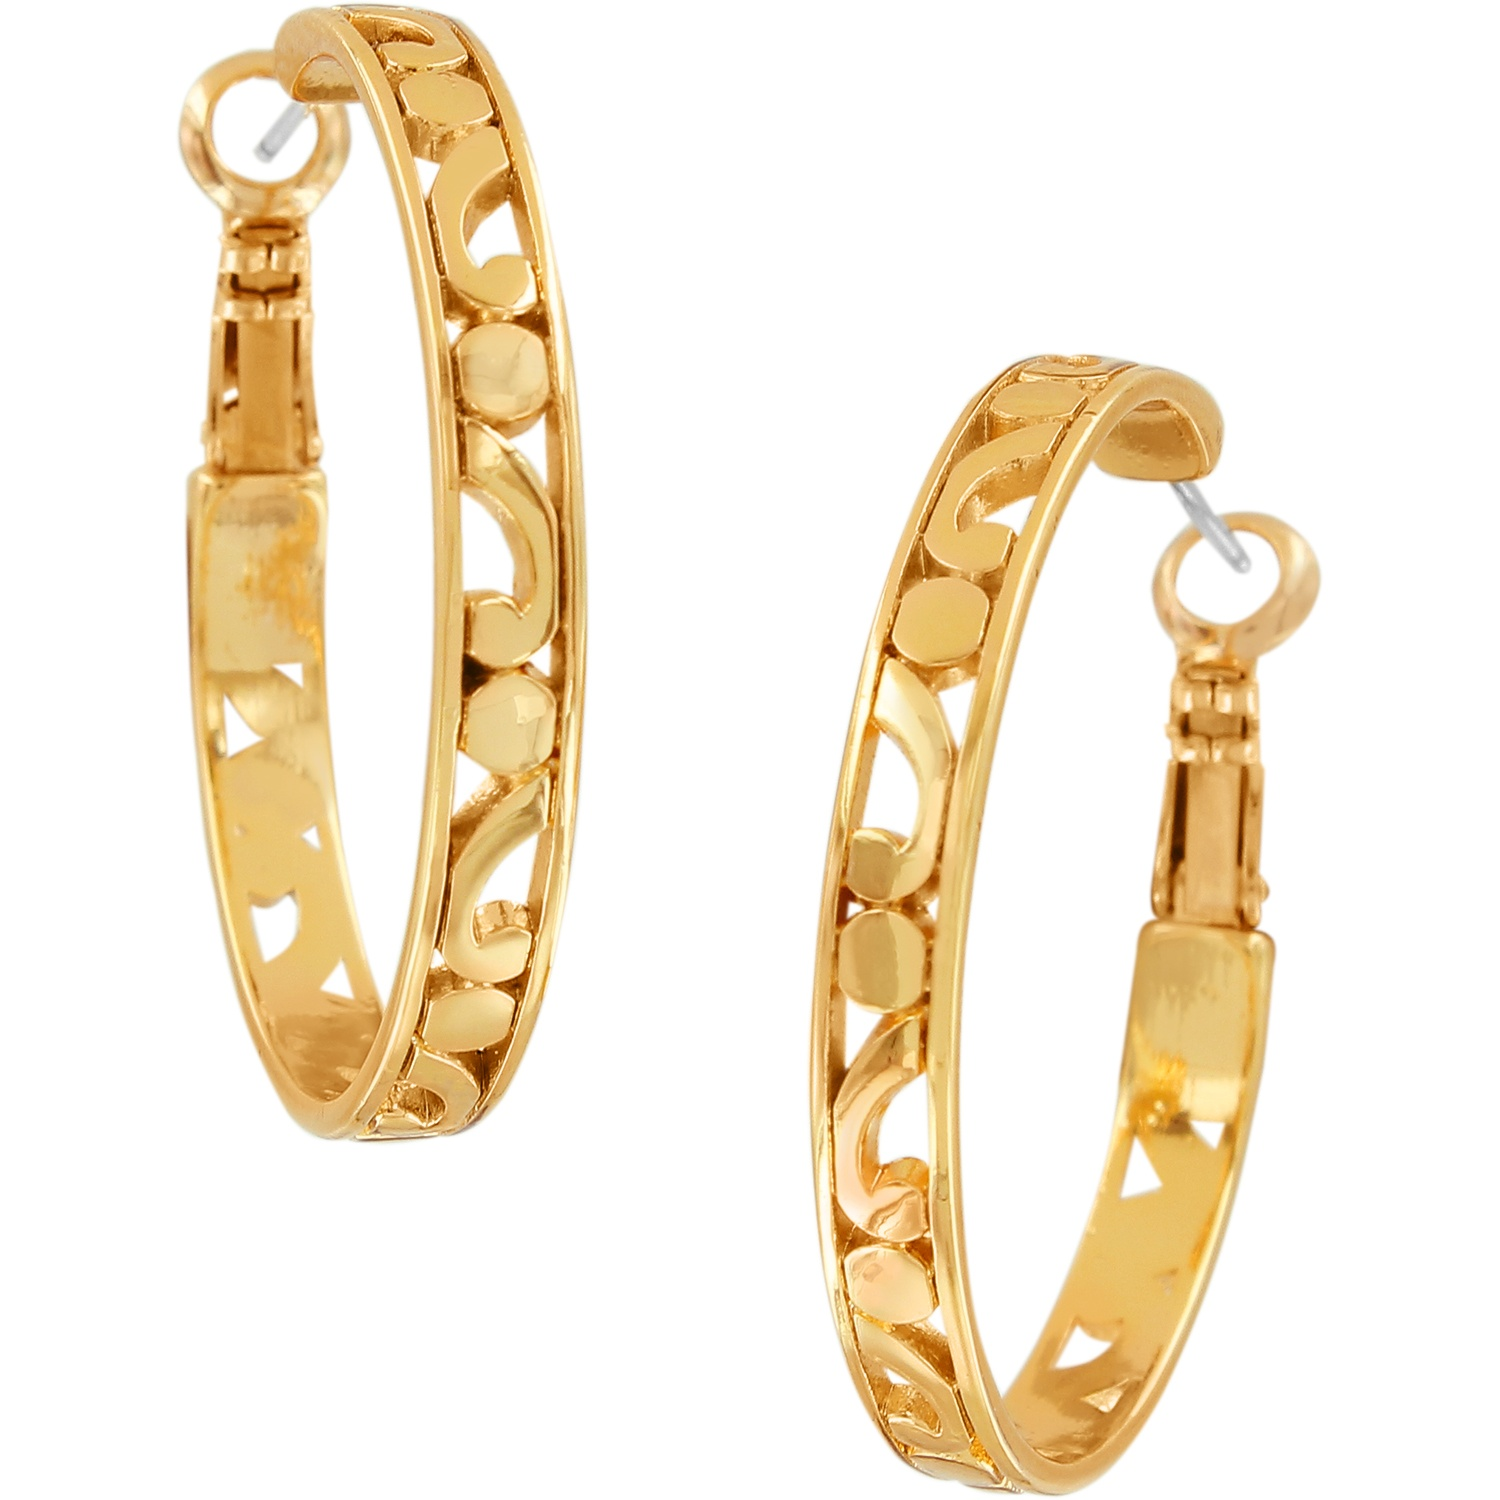 Beautiful Gold Jewelry | Brighton Collectibles